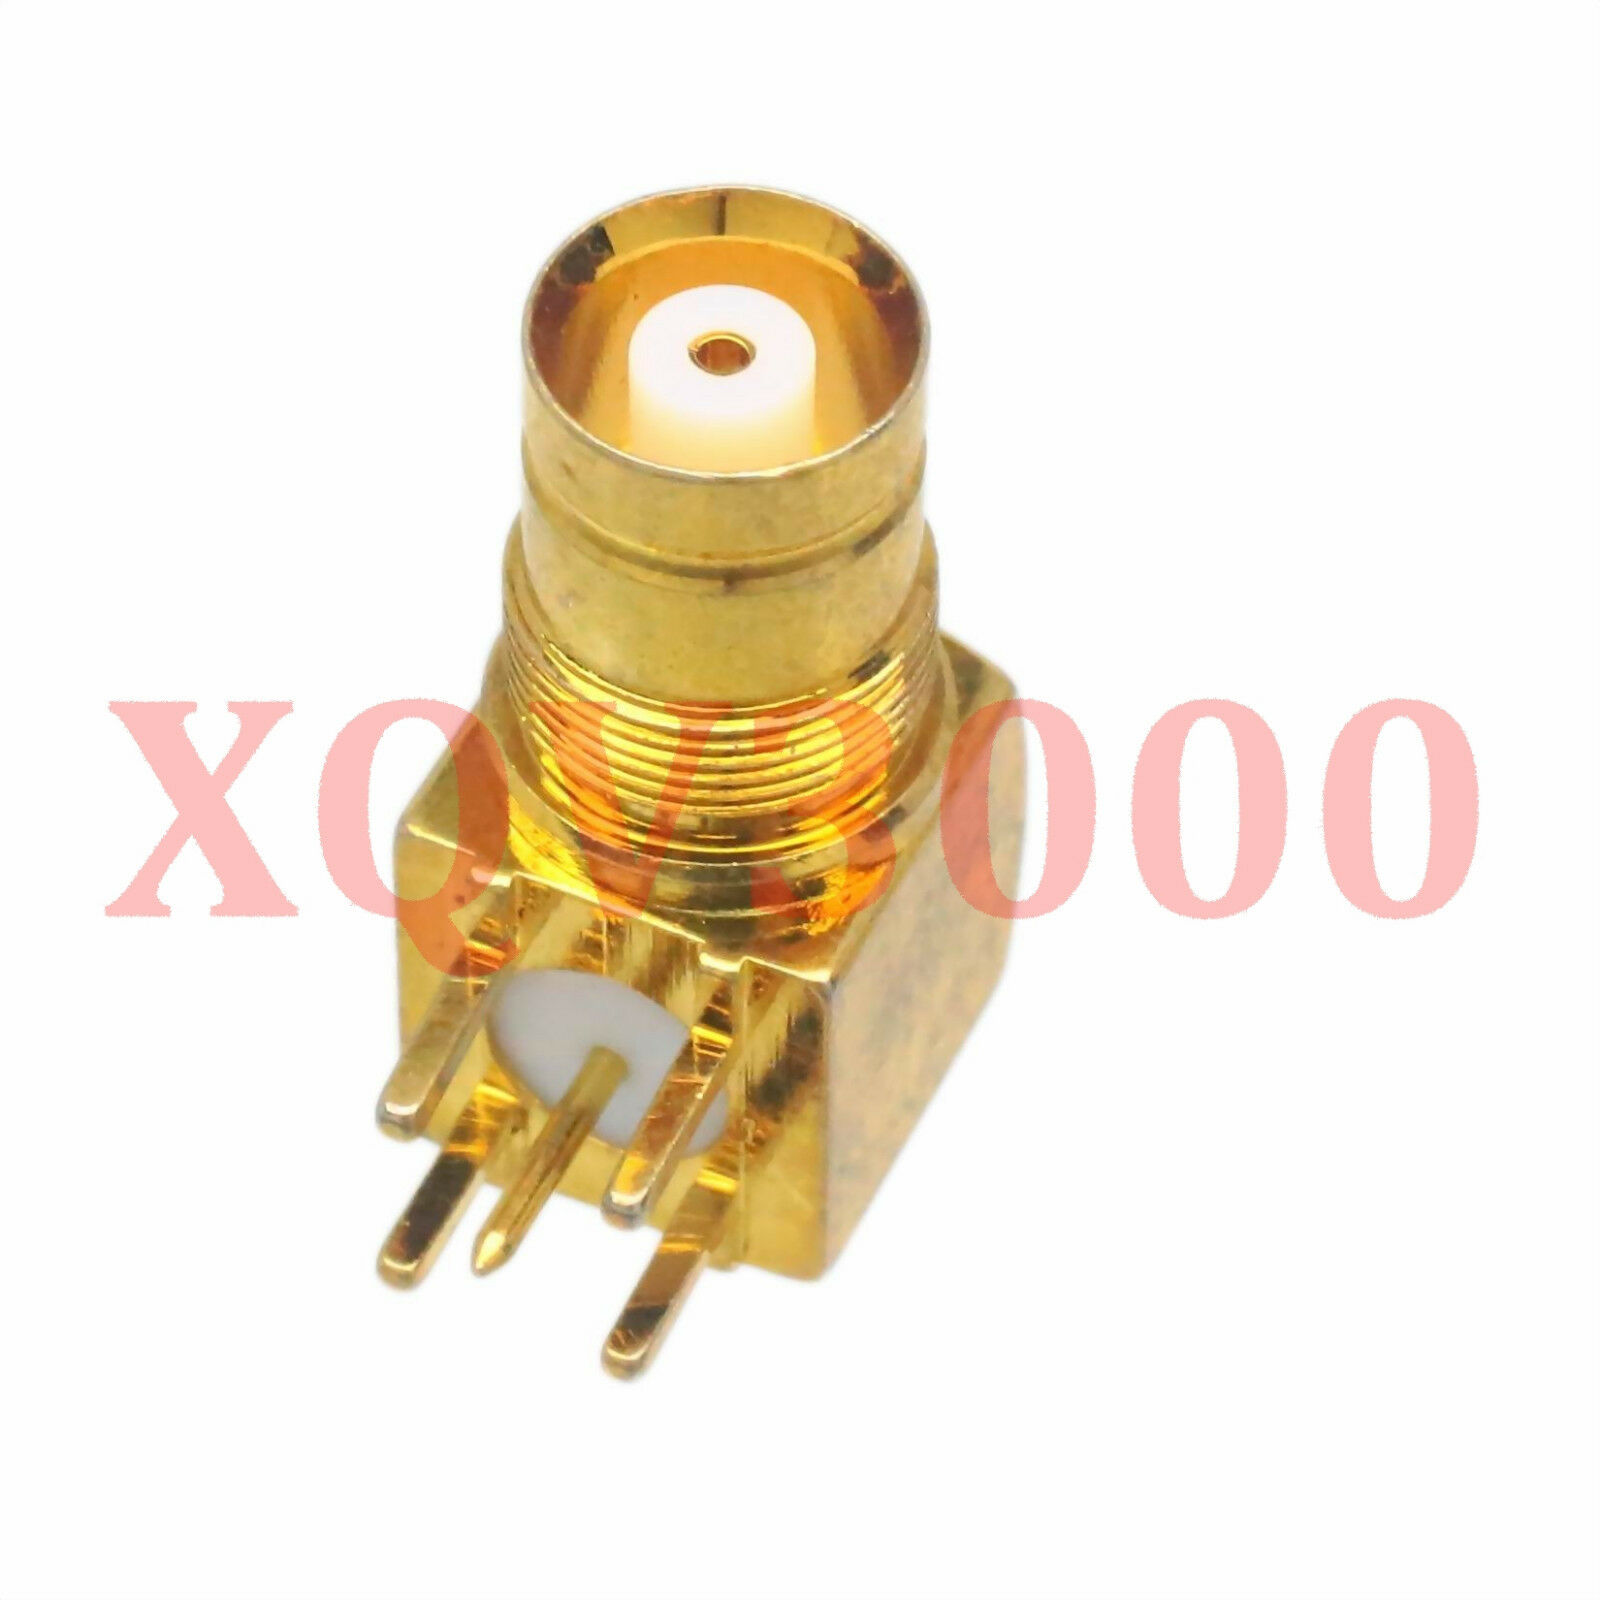 1pce Connector BNC jack pin bulkhead solder PCB mount RF COAXIAL Right angle